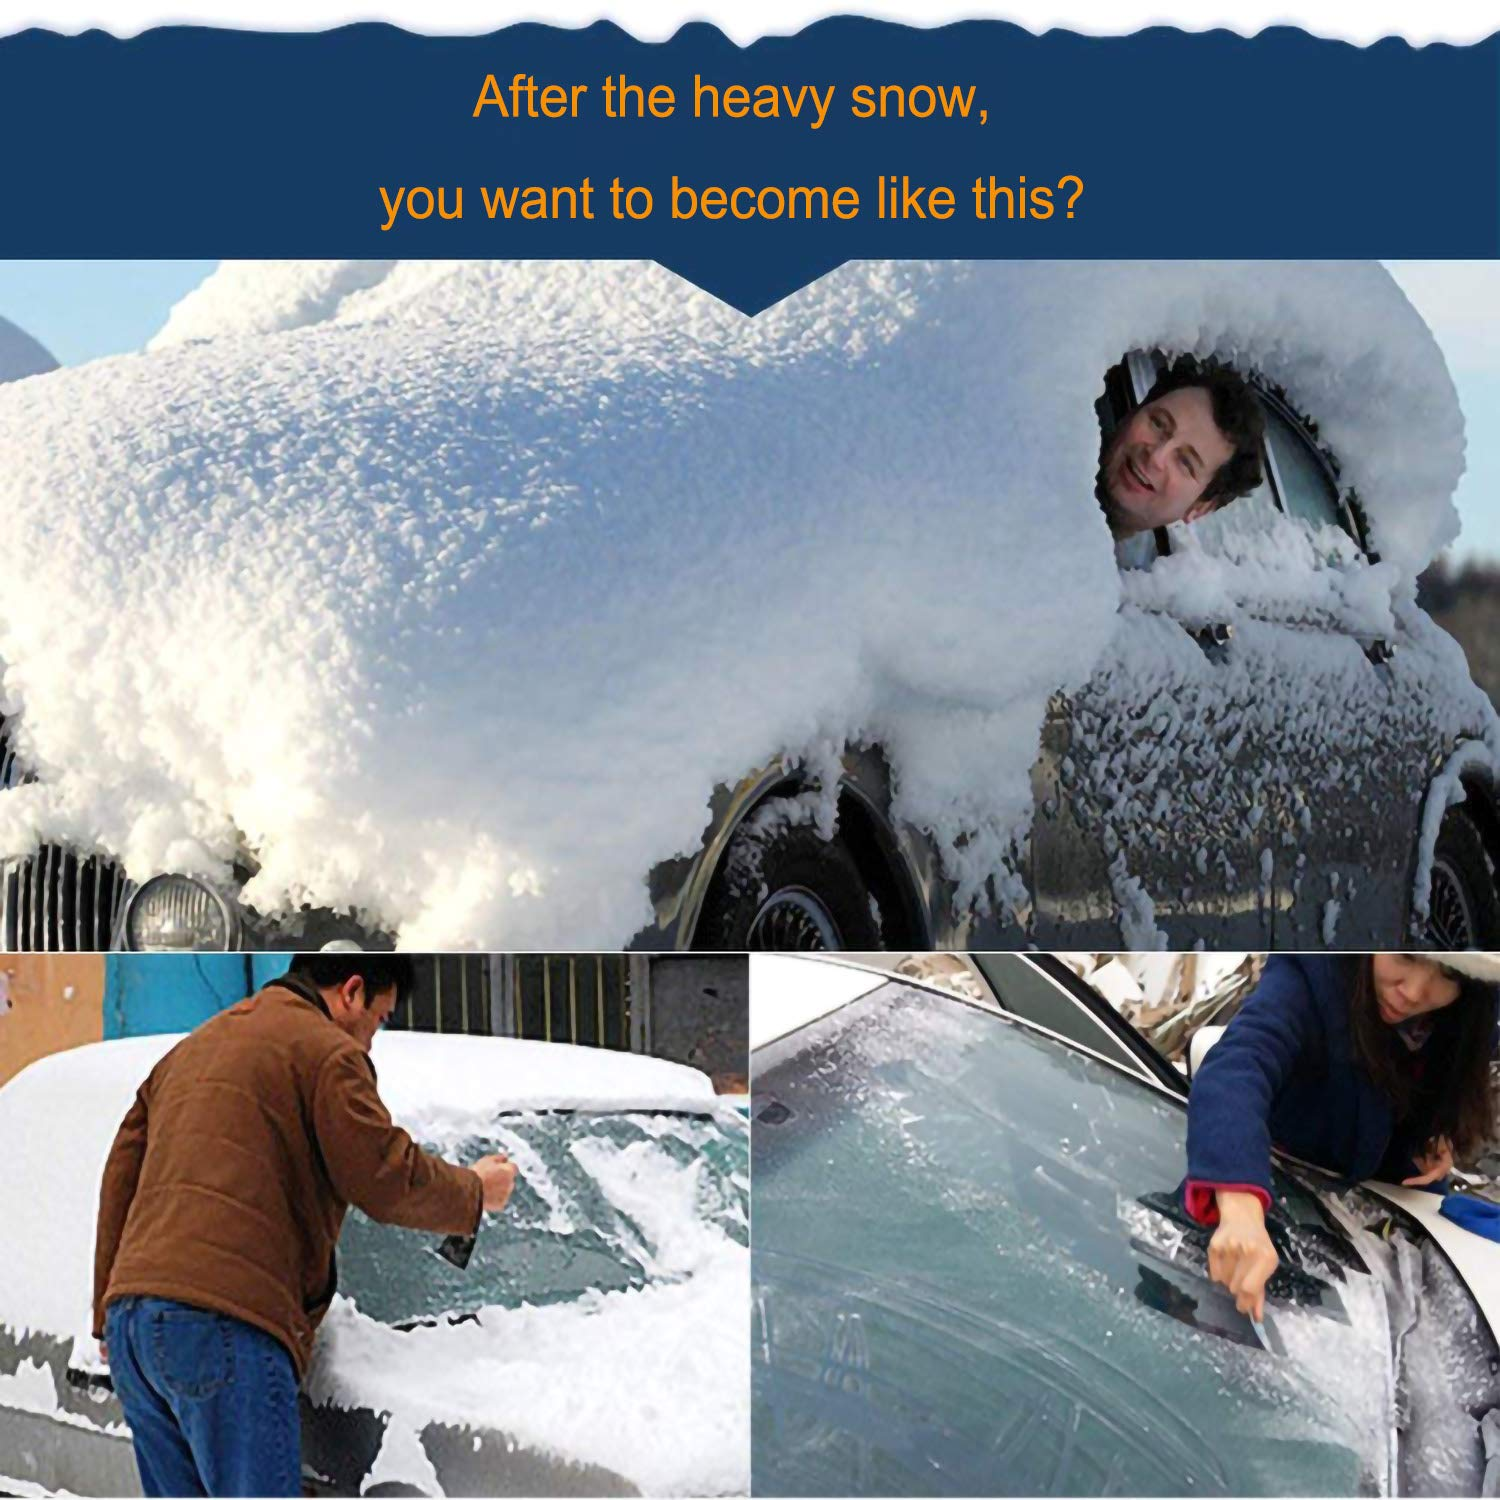 Tree Sap Pollen Van or Automobile Protects Car from Sun Fallen Leaves 57 X 39 57 X 39 BestWa Car Windshield Snow Cover /& Sun Shade Cover Ice and Frost In All Seasons SUV Fits Most Car Truck Snow Dust